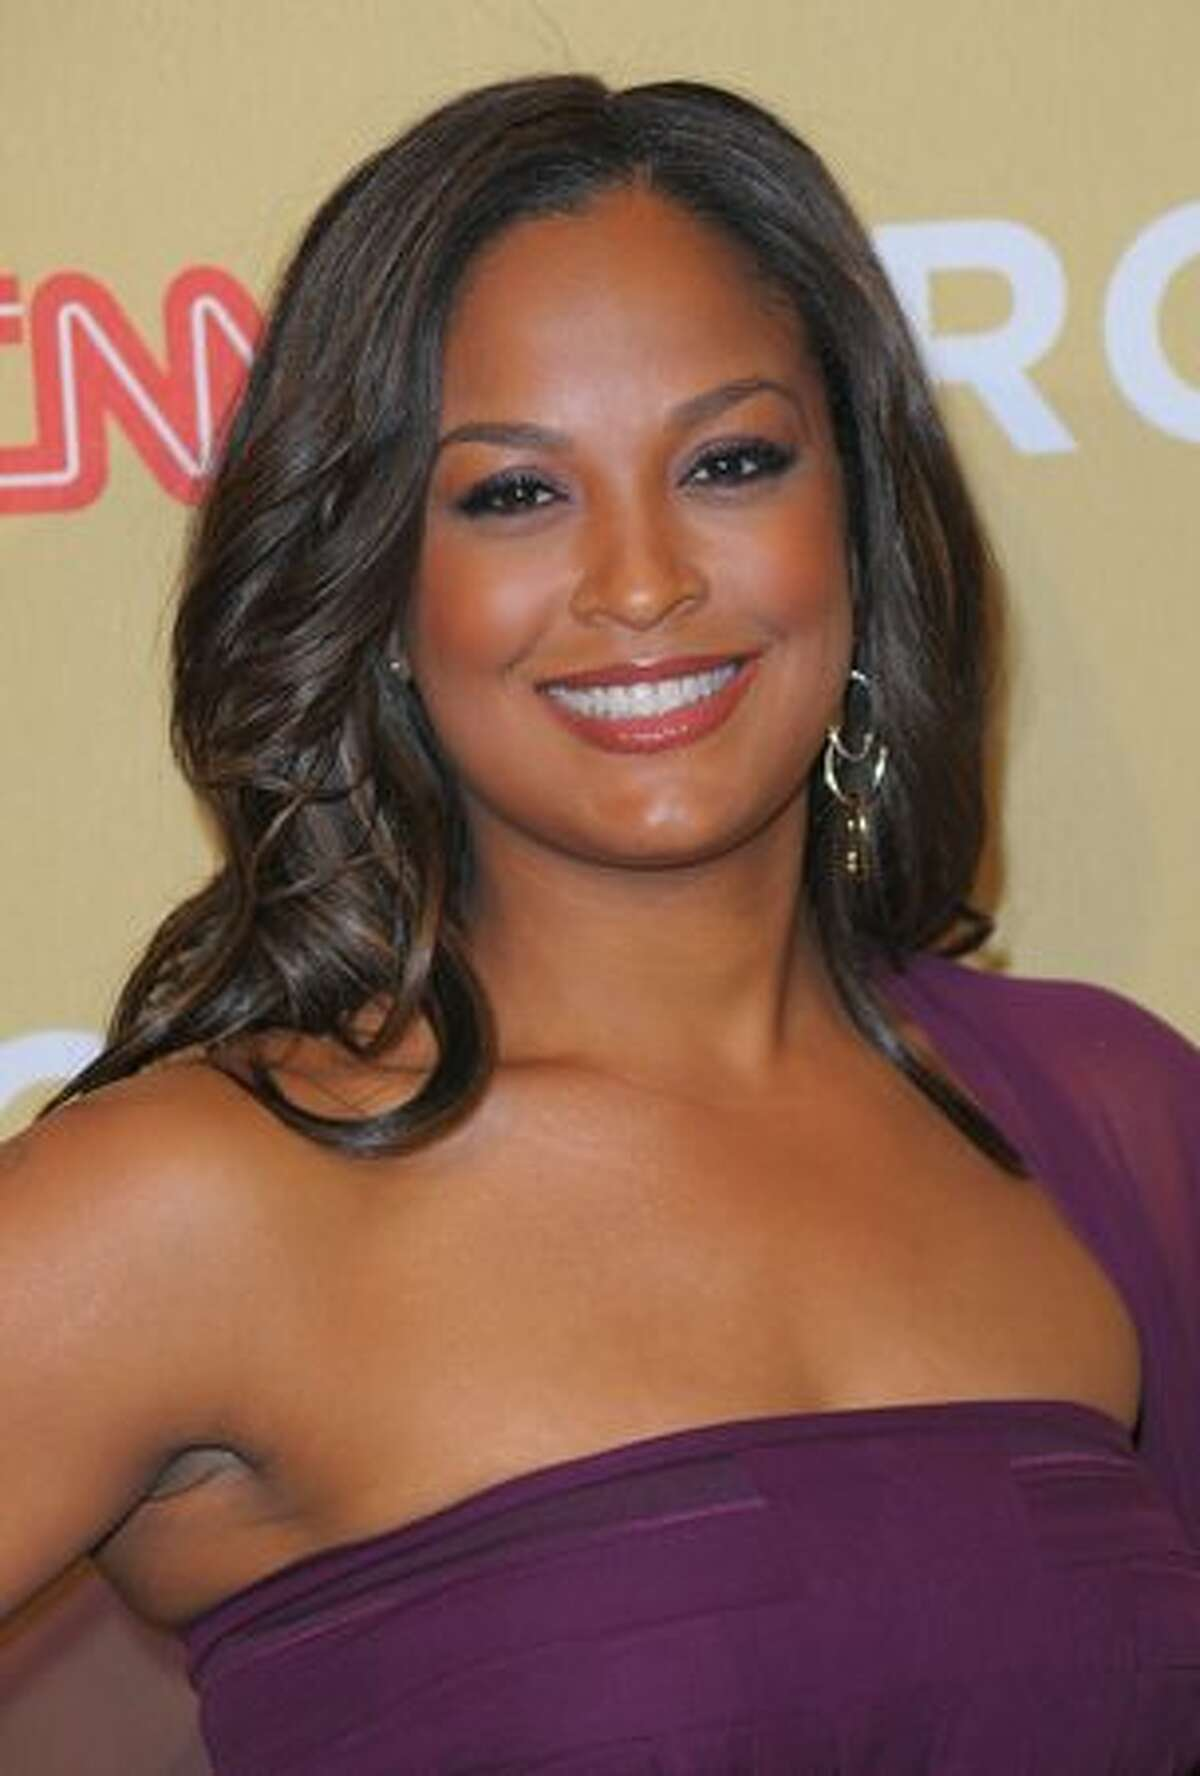 Boxer Laila Ali attends the 2009 CNN Heroes Awards held at The Kodak Theatre on Saturday in Hollywood, California.